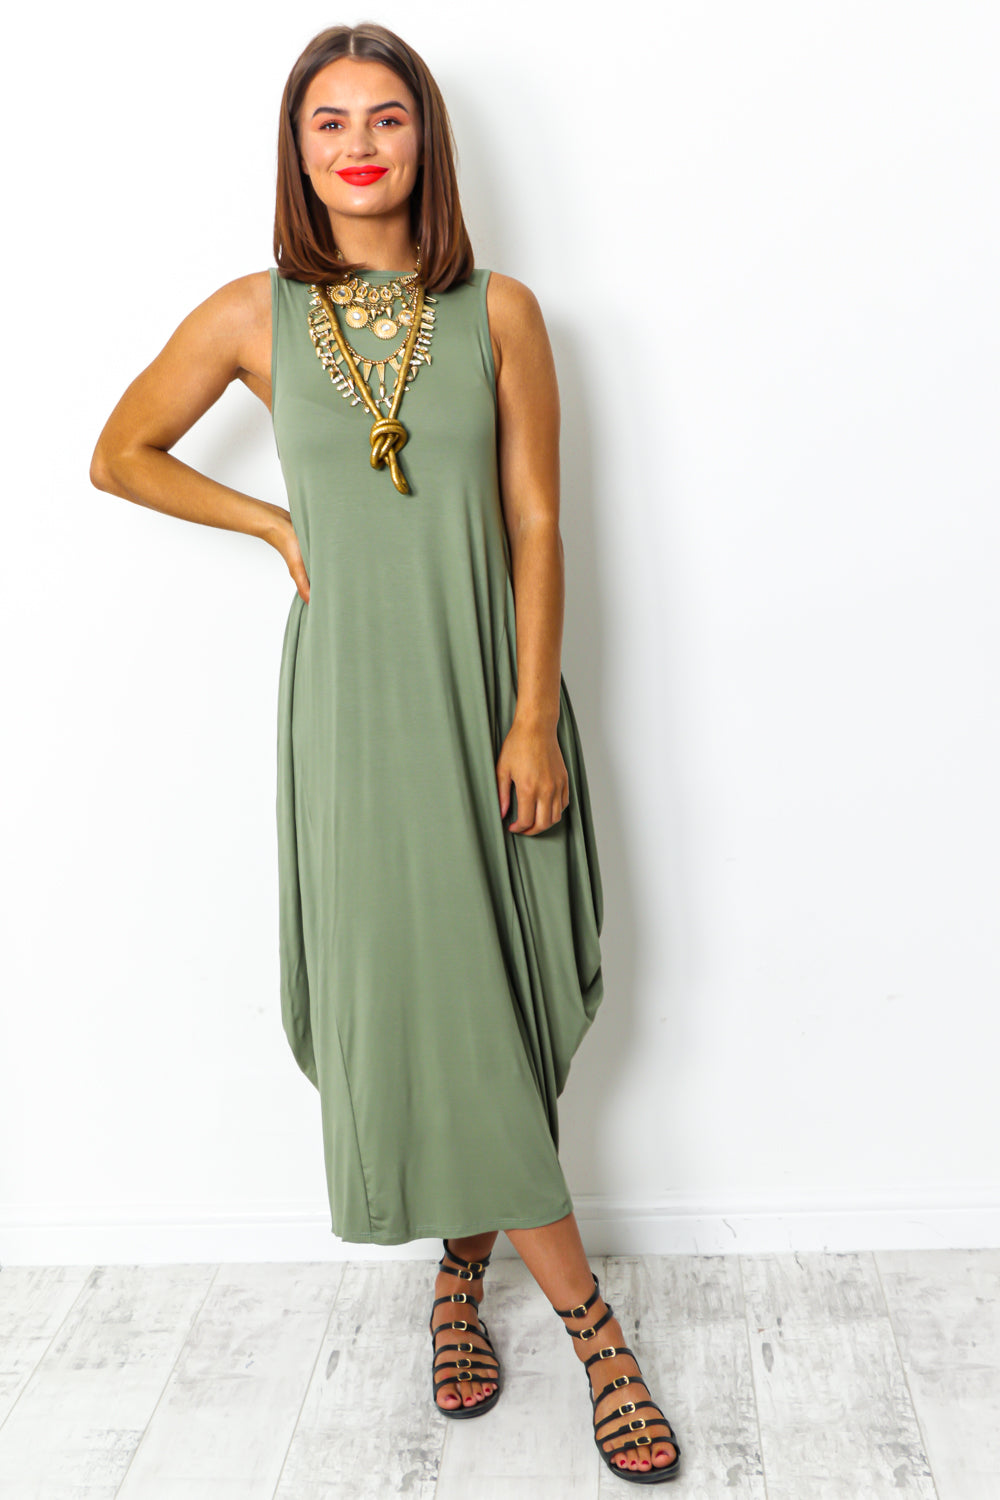 Khaki tie dye maxi parachute dress